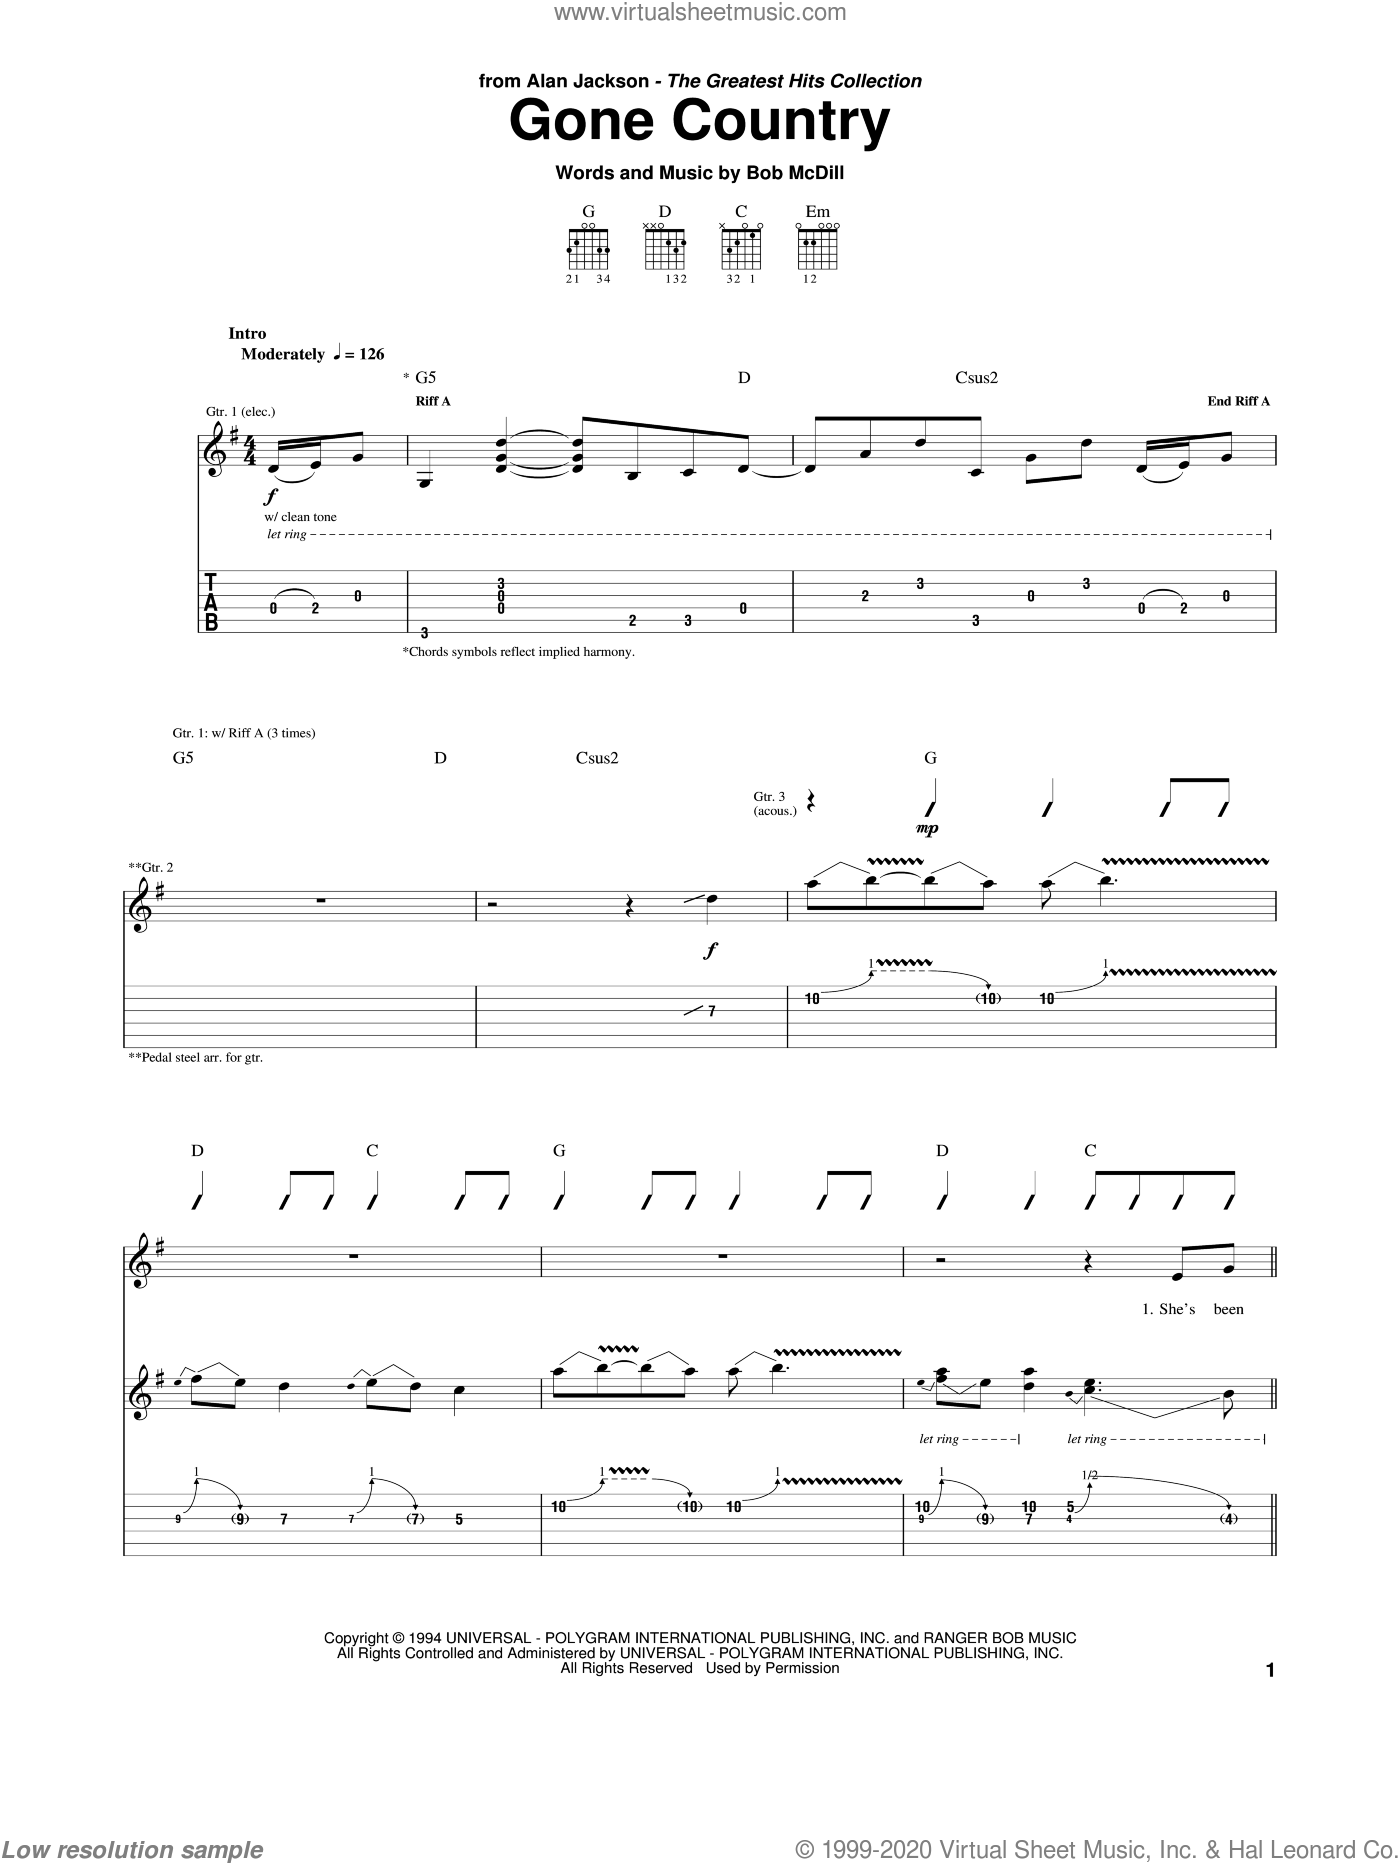 Gone Country sheet music for guitar (tablature) by Bob McDill